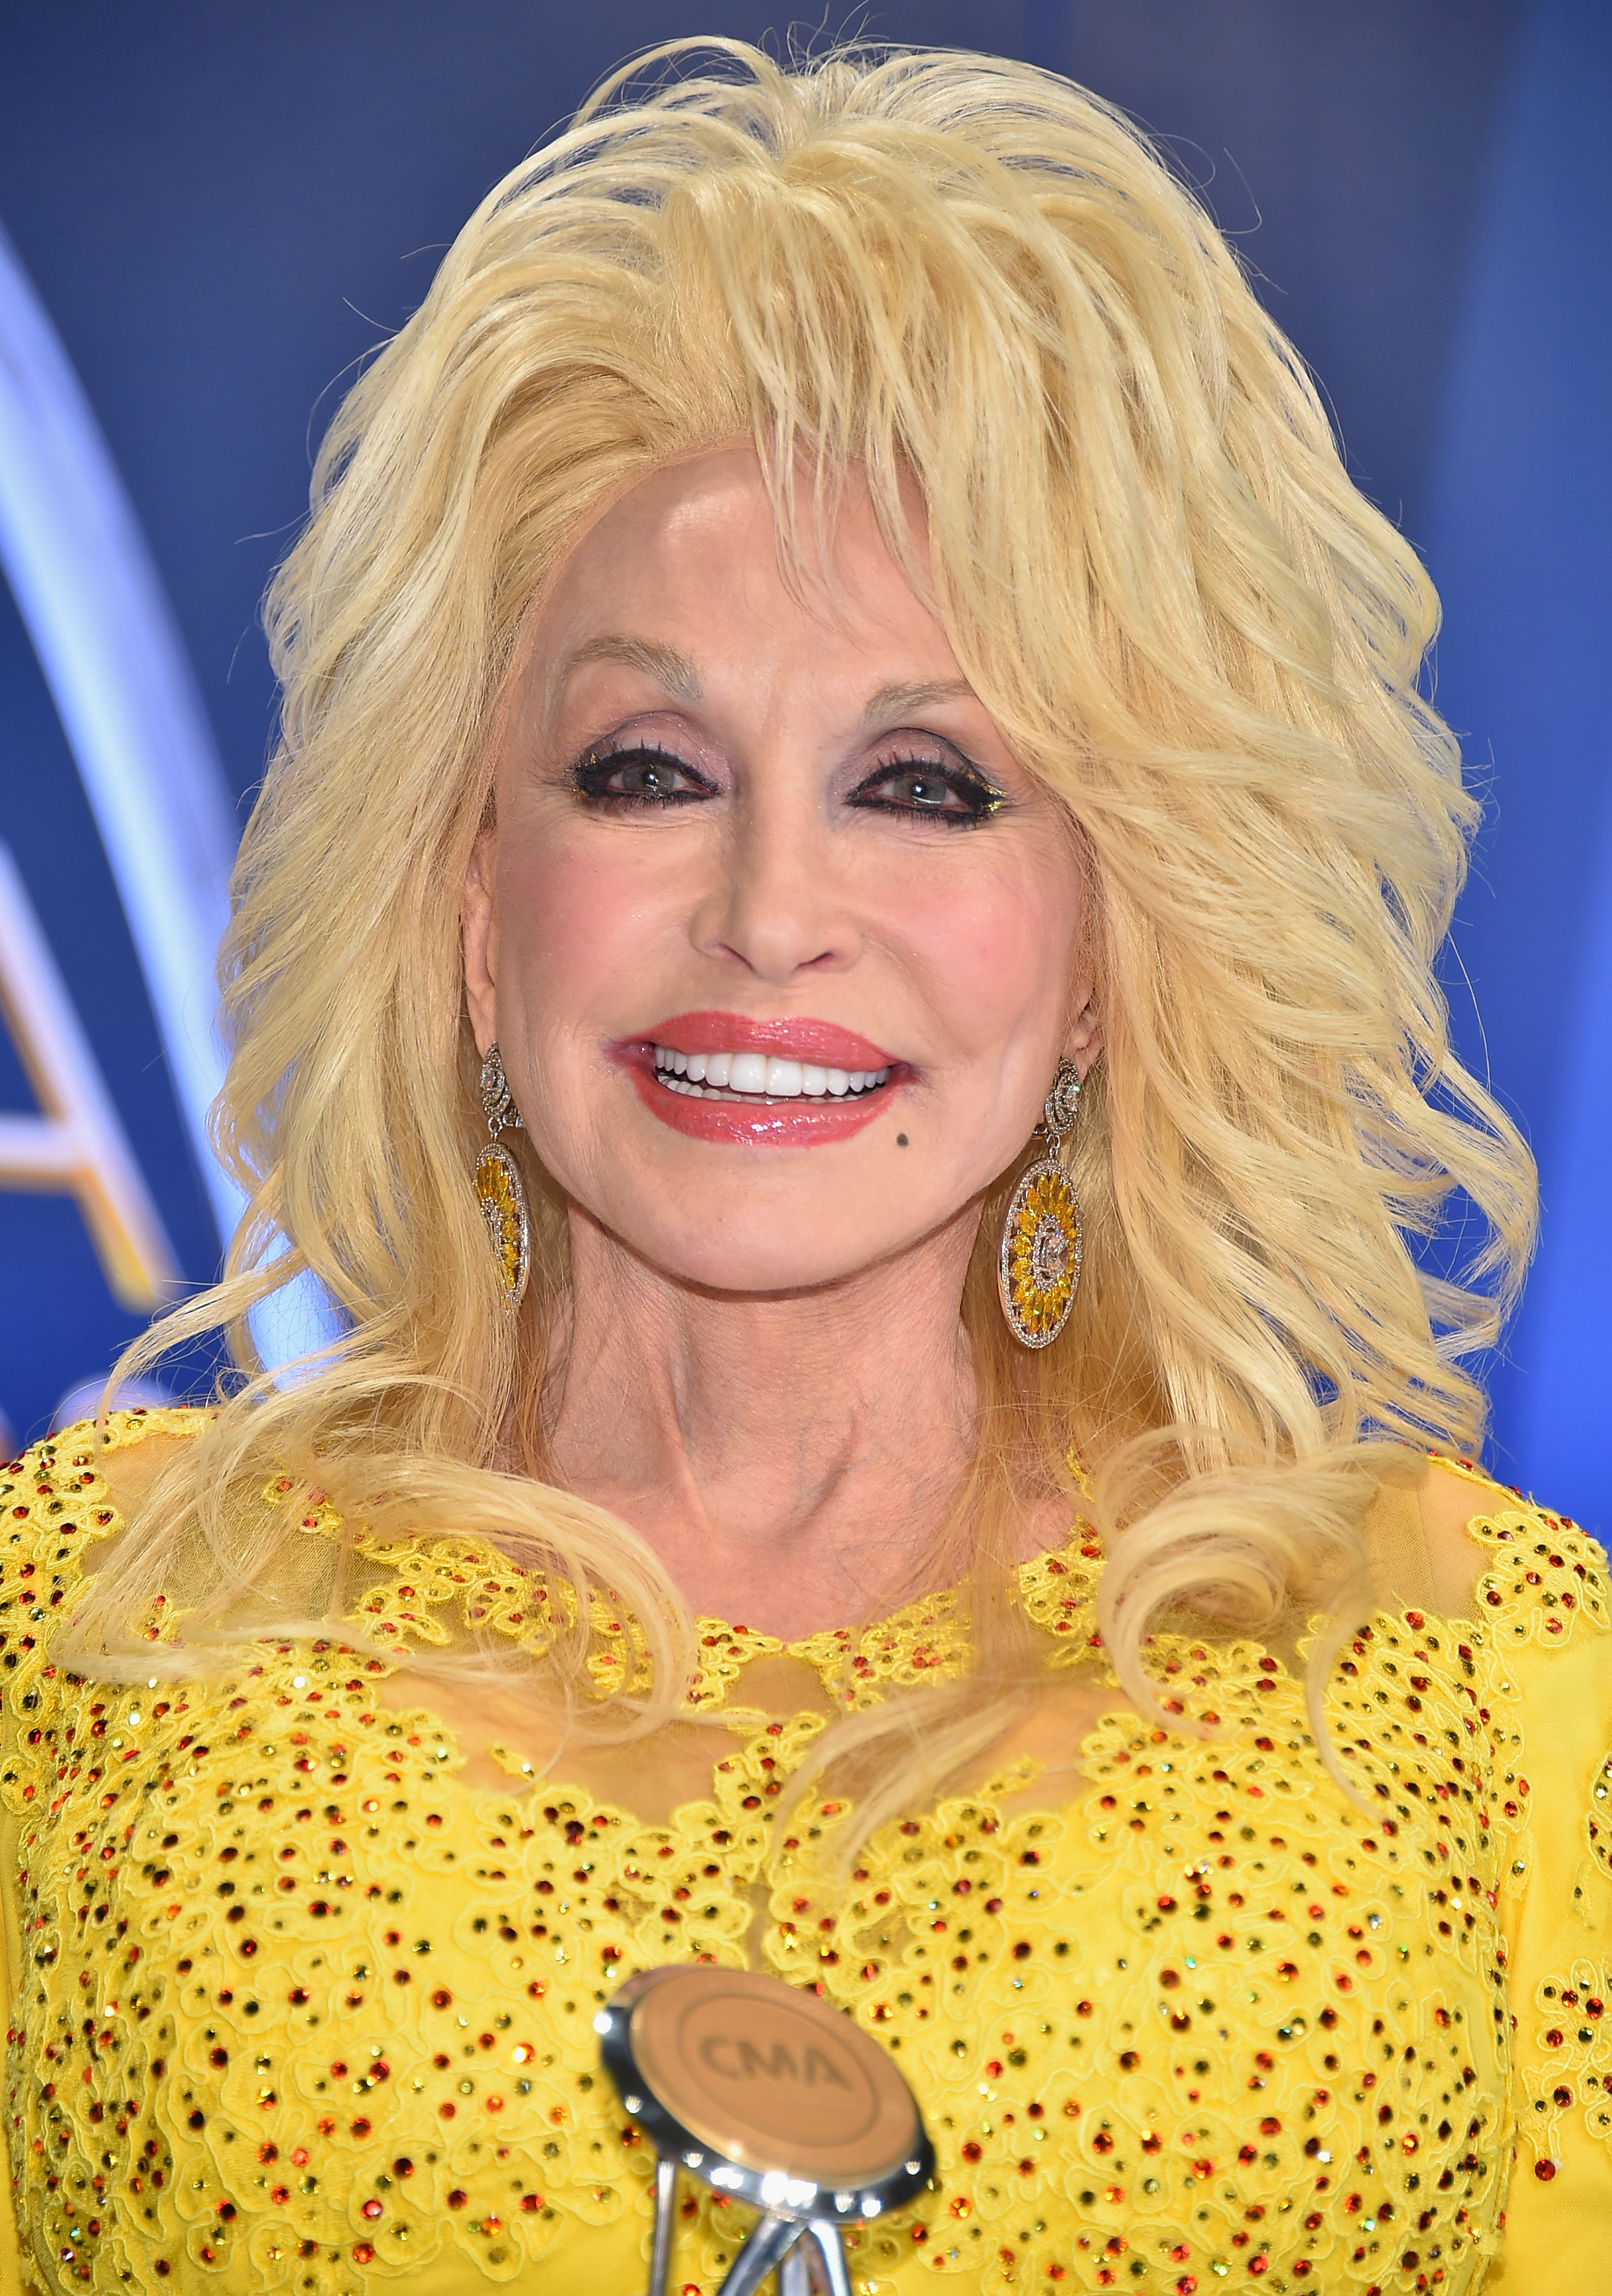 Dolly Parton Plastic Surgery: What Has She Gotten Done?